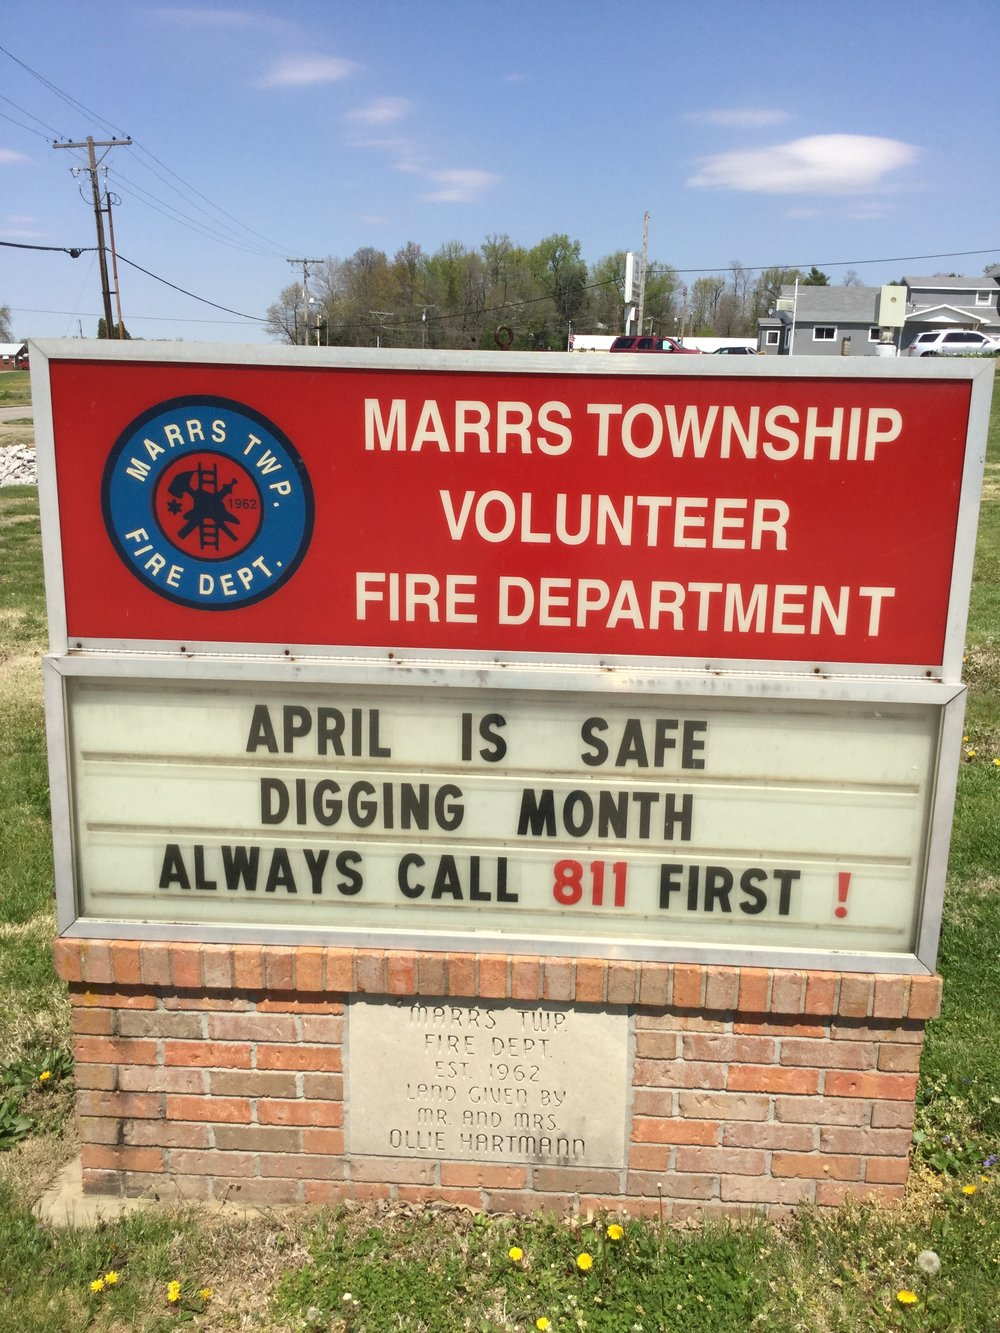 Marrs Township Volunteer Fire Department